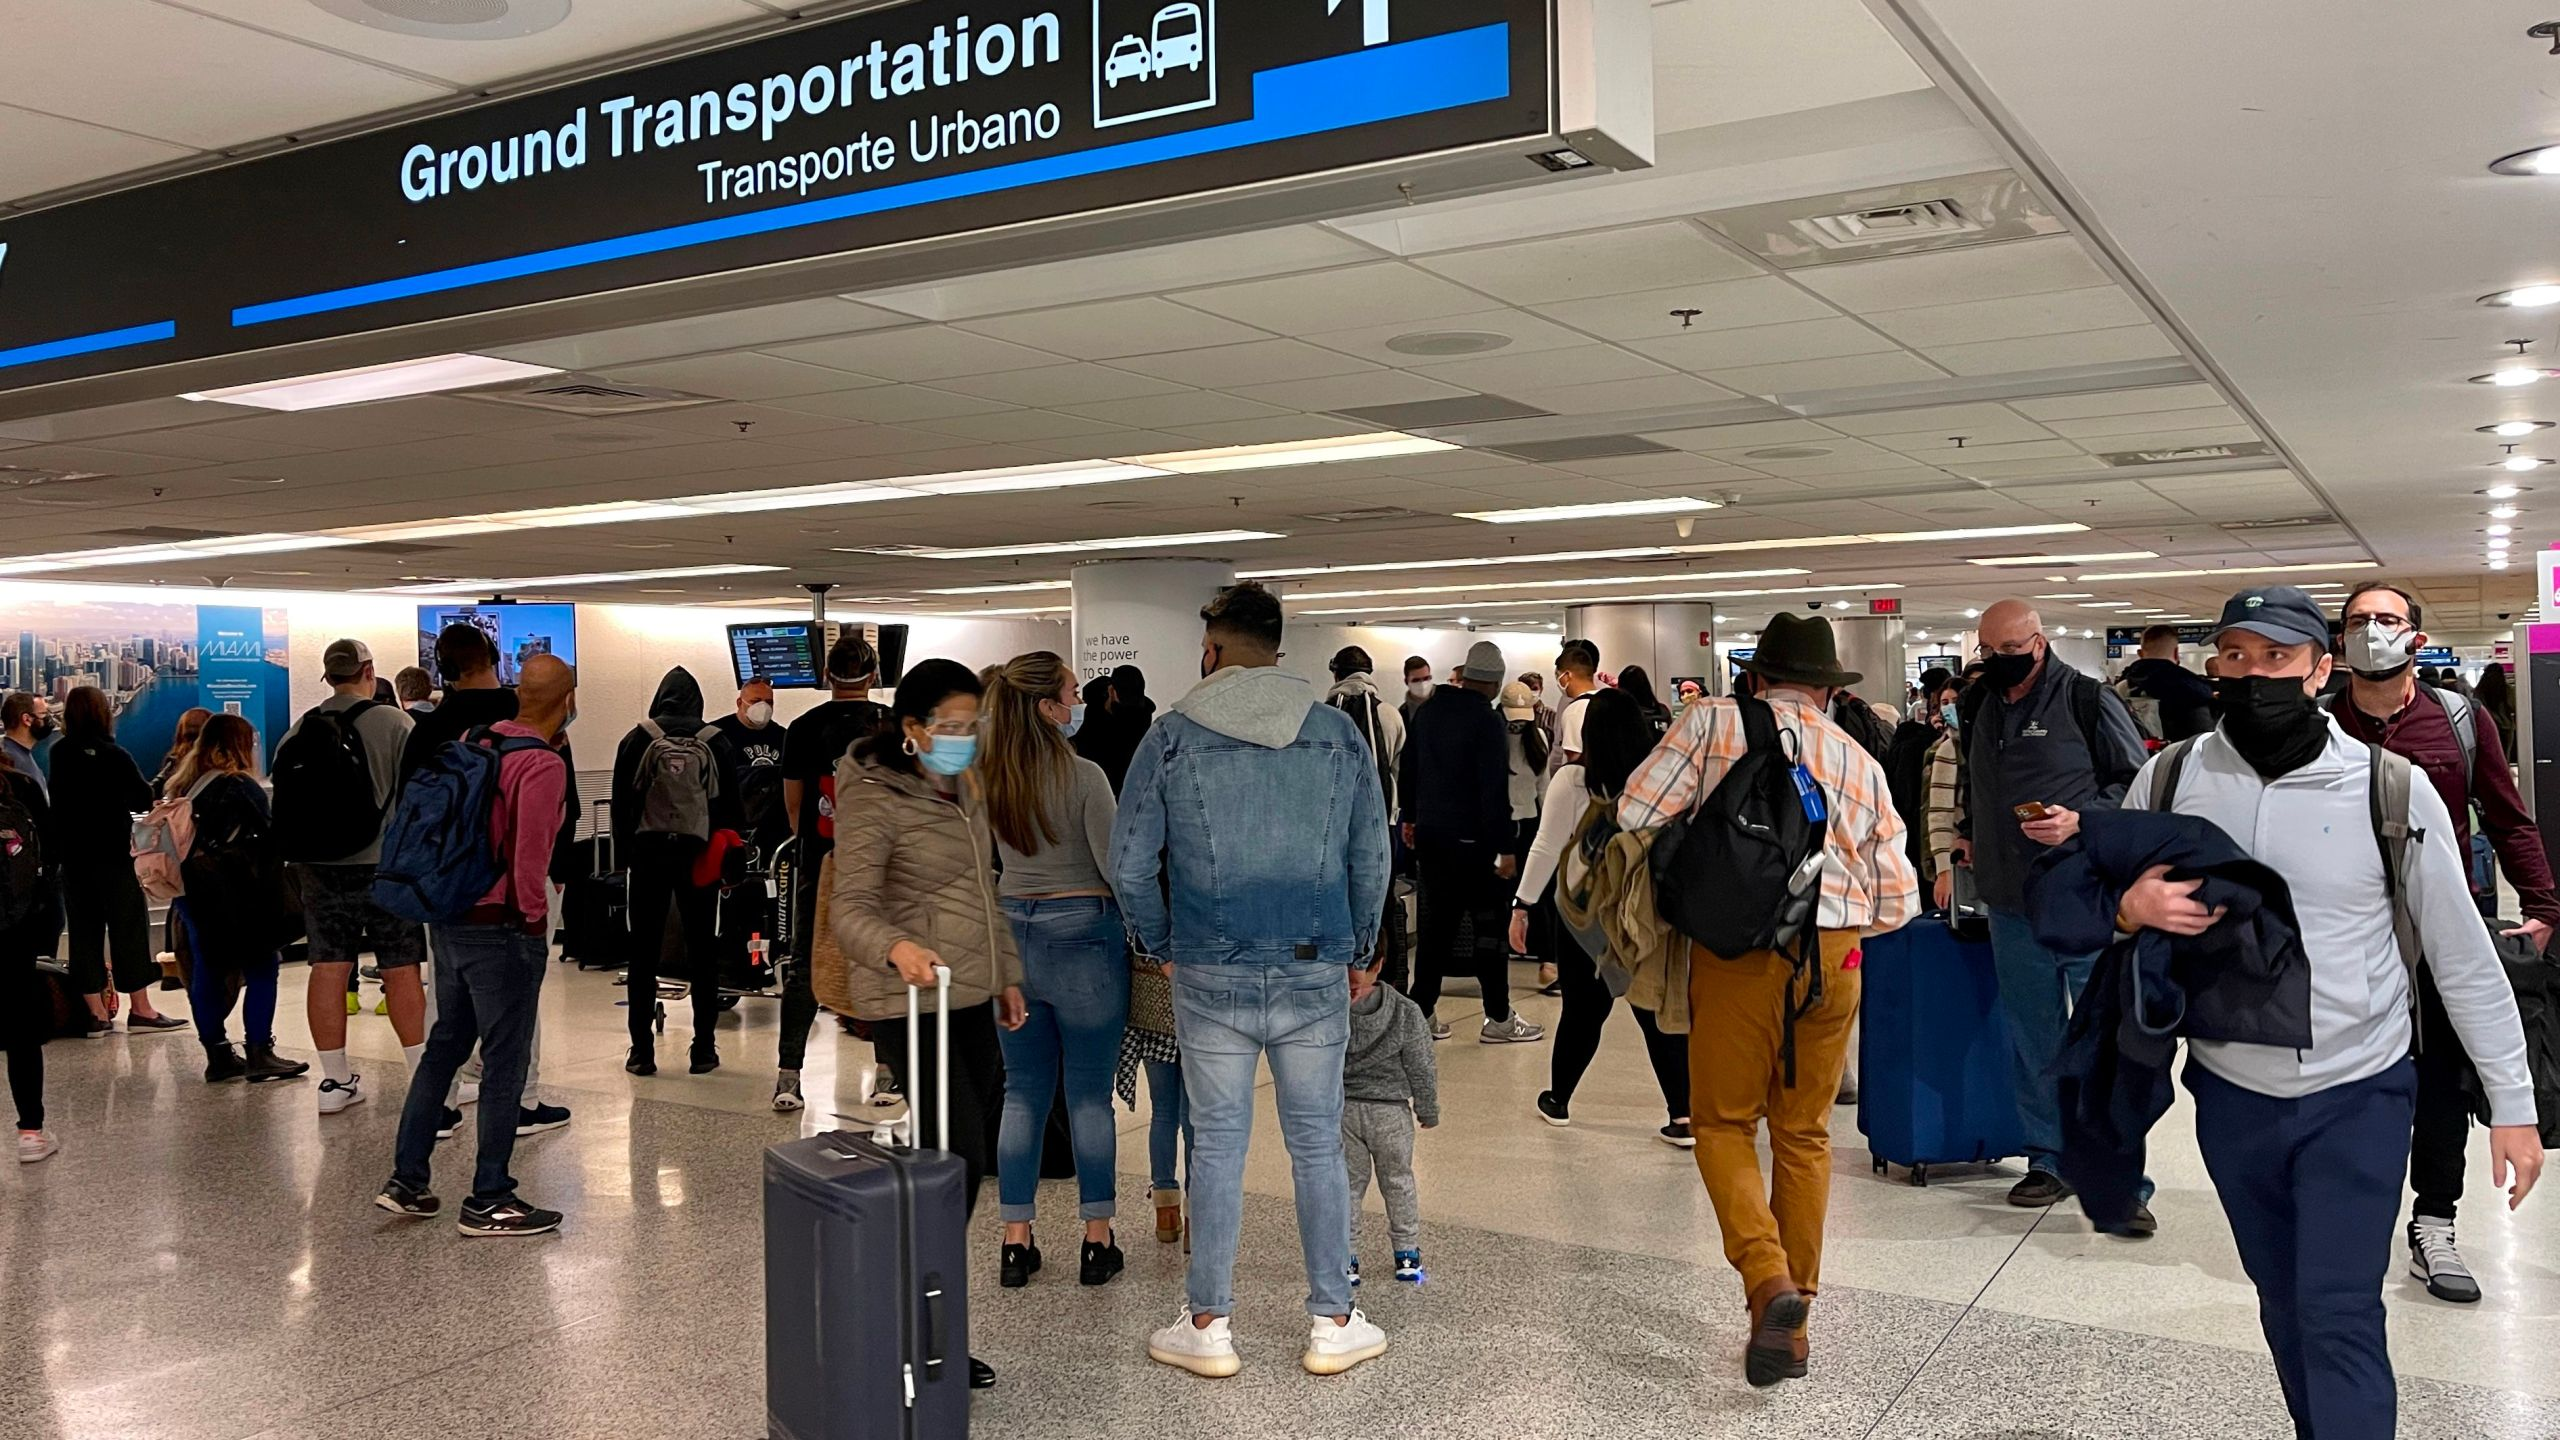 A crowd is seen, on Dec. 18, 2020 waiting by the baggage carousel at the Miami International Airport in Miami, Florida, as the Christmas holiday travel starts despite the coronavirus pandemic. (DANIEL SLIM/AFP via Getty Images)